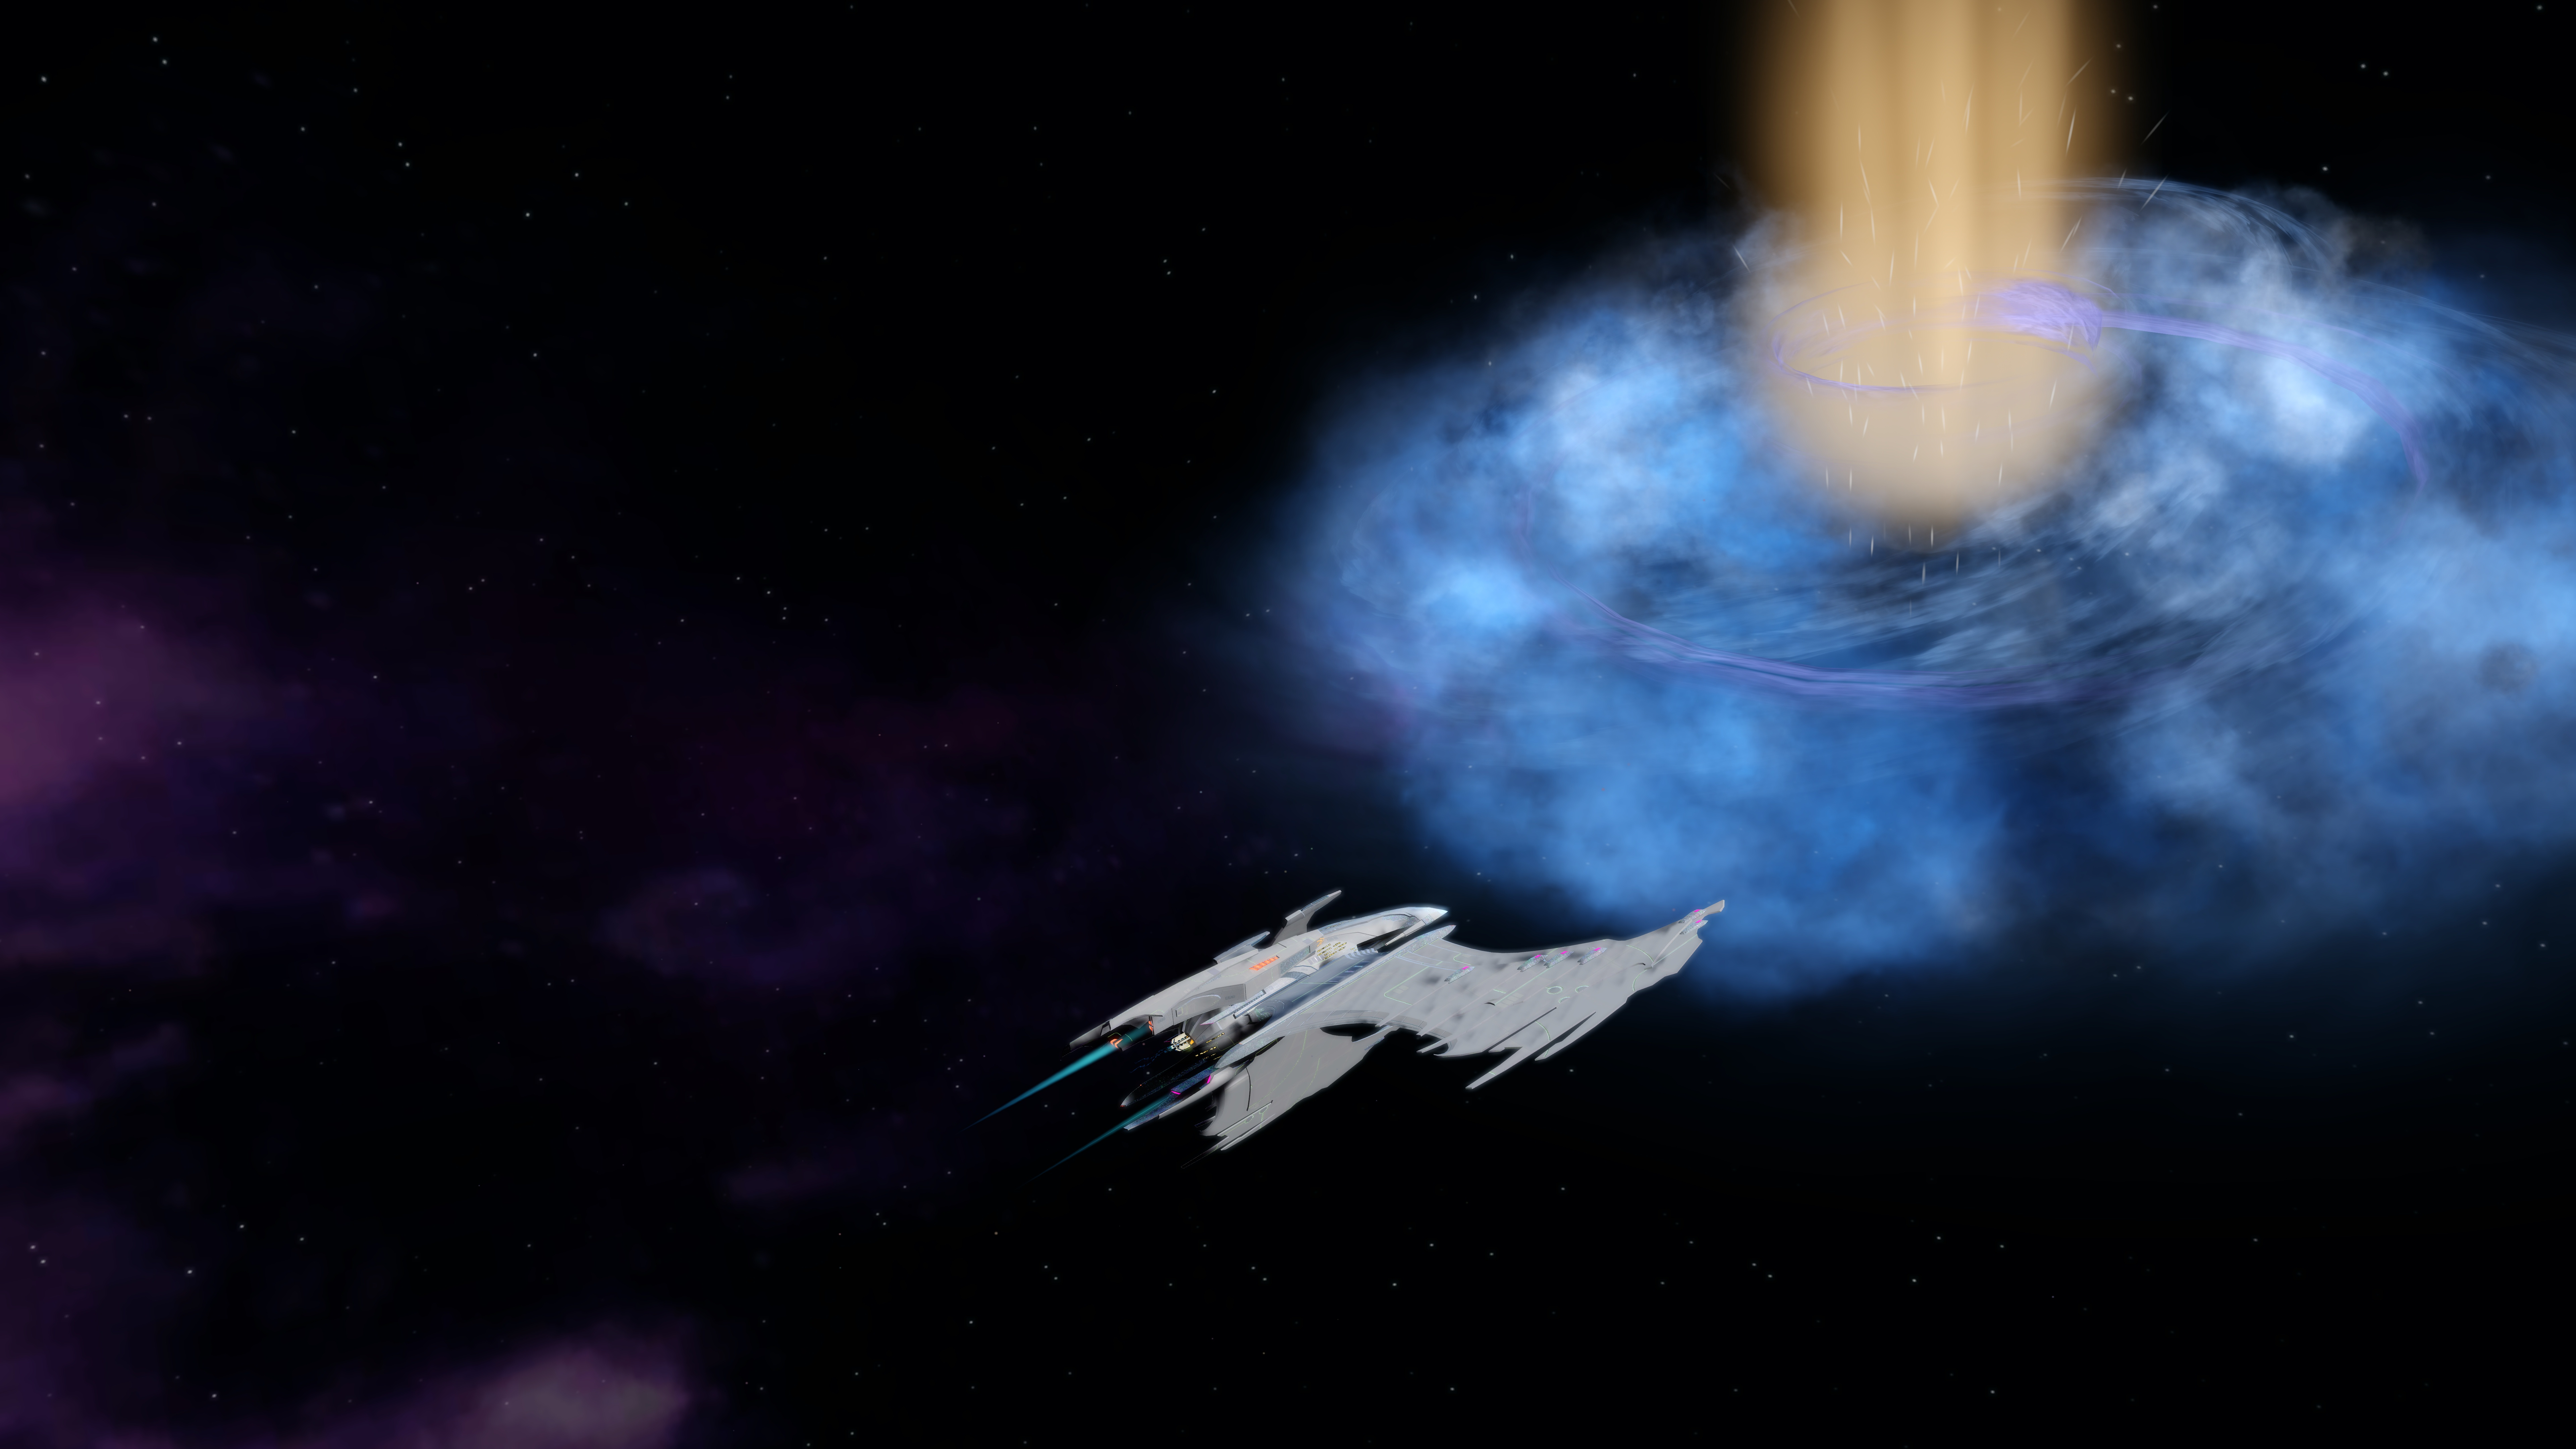 RRW Antius - my Eng main's ship heading off to work